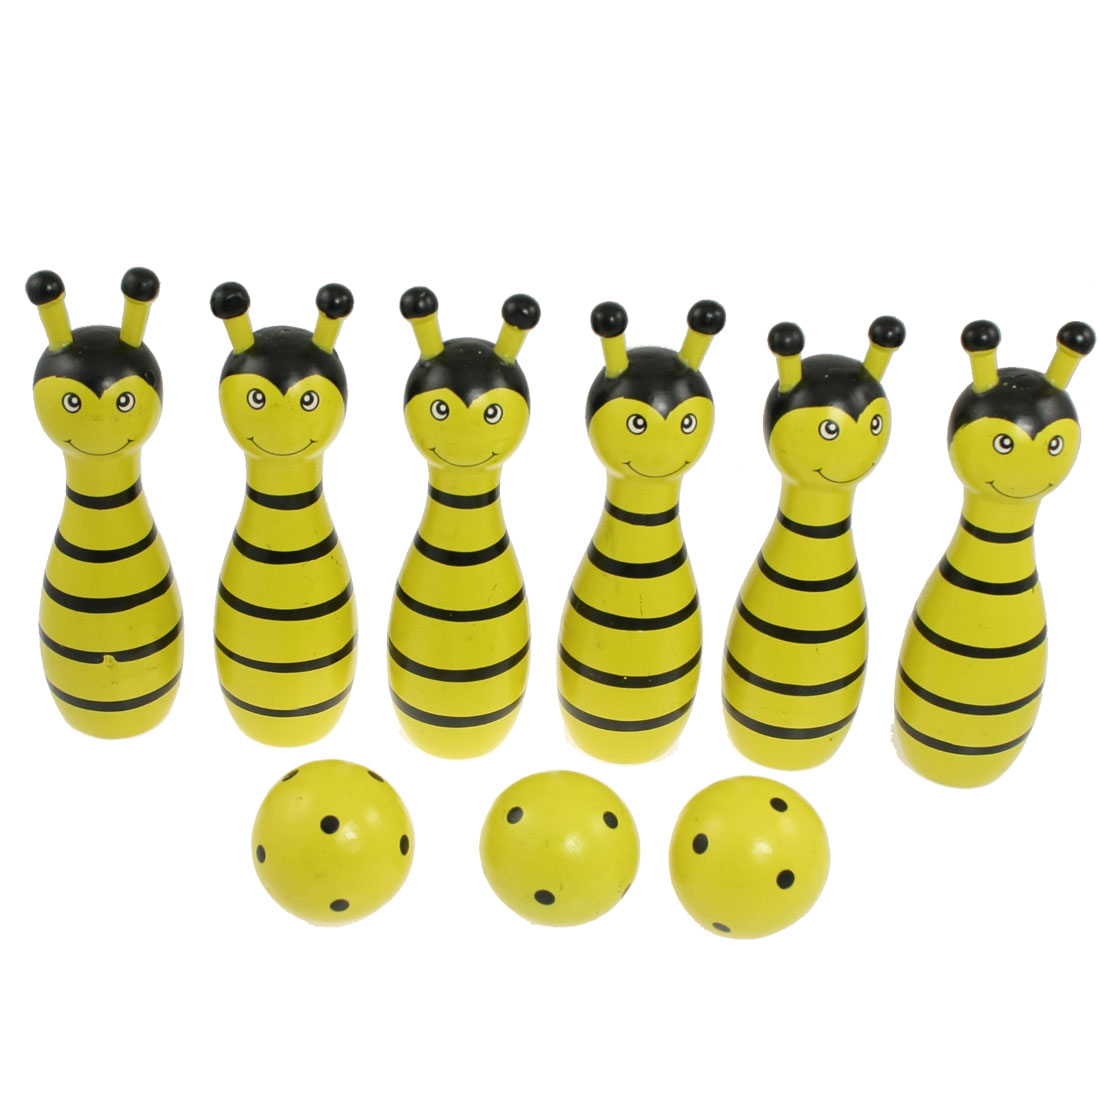 Cartoon Bee Shaped 6 Pins 3 Balls Bowling Game Toy Yellow Black for Child